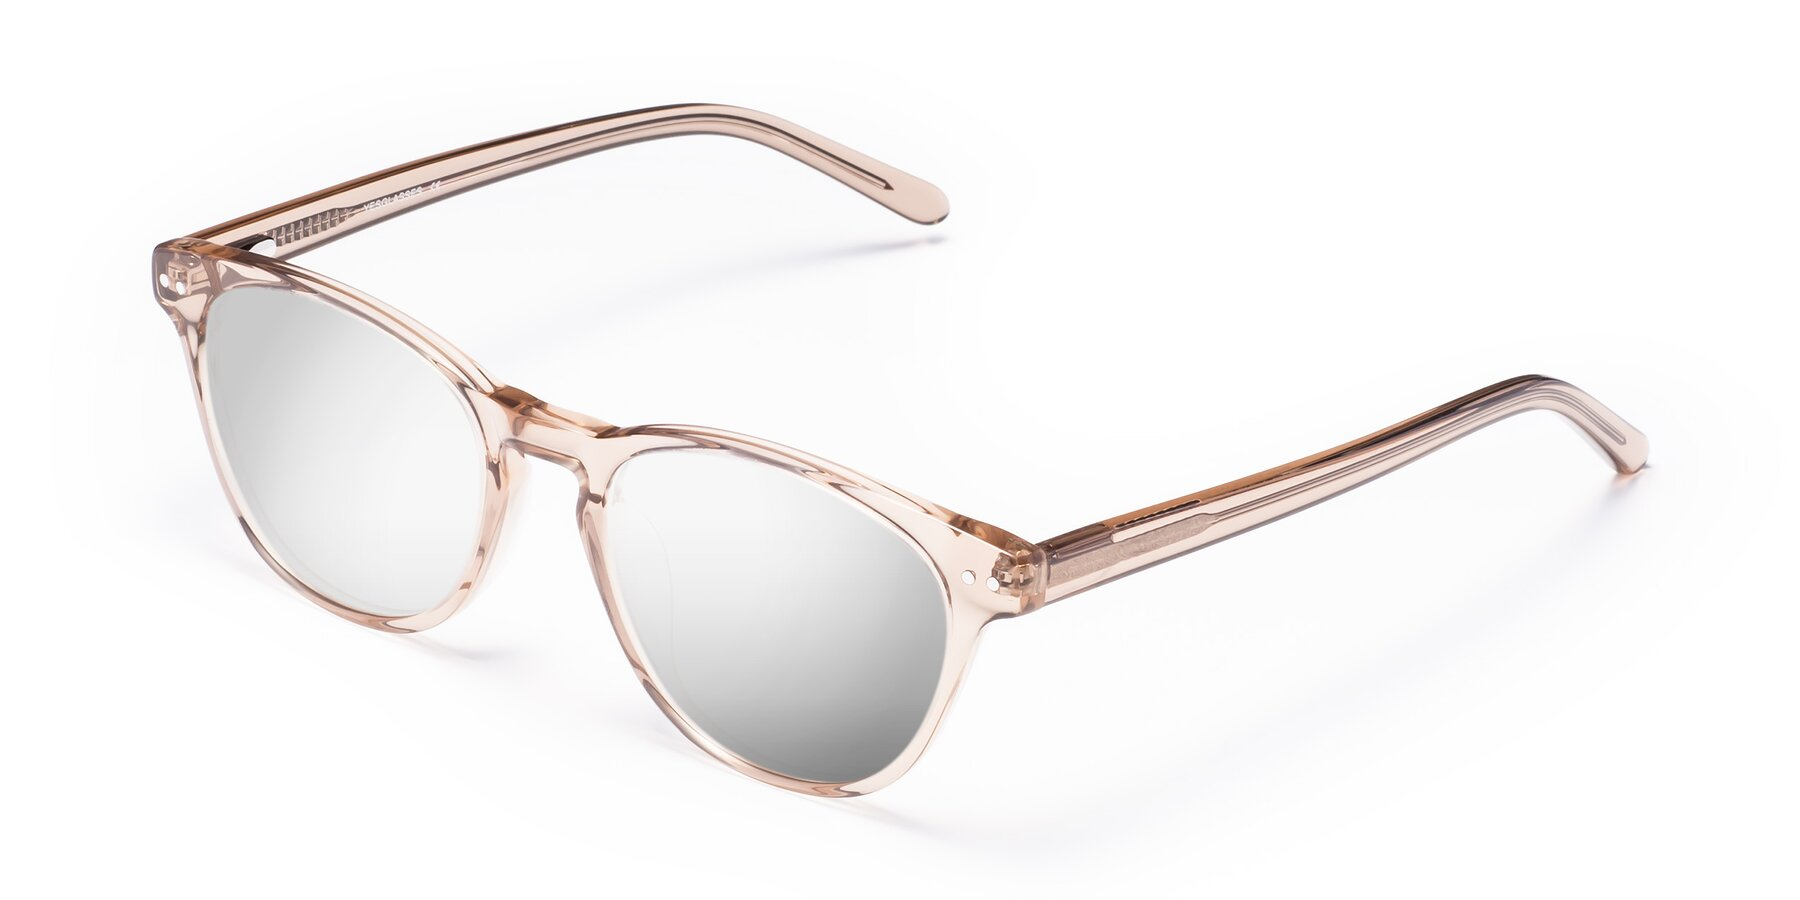 Angle of Blaze in light Brown with Silver Mirrored Lenses